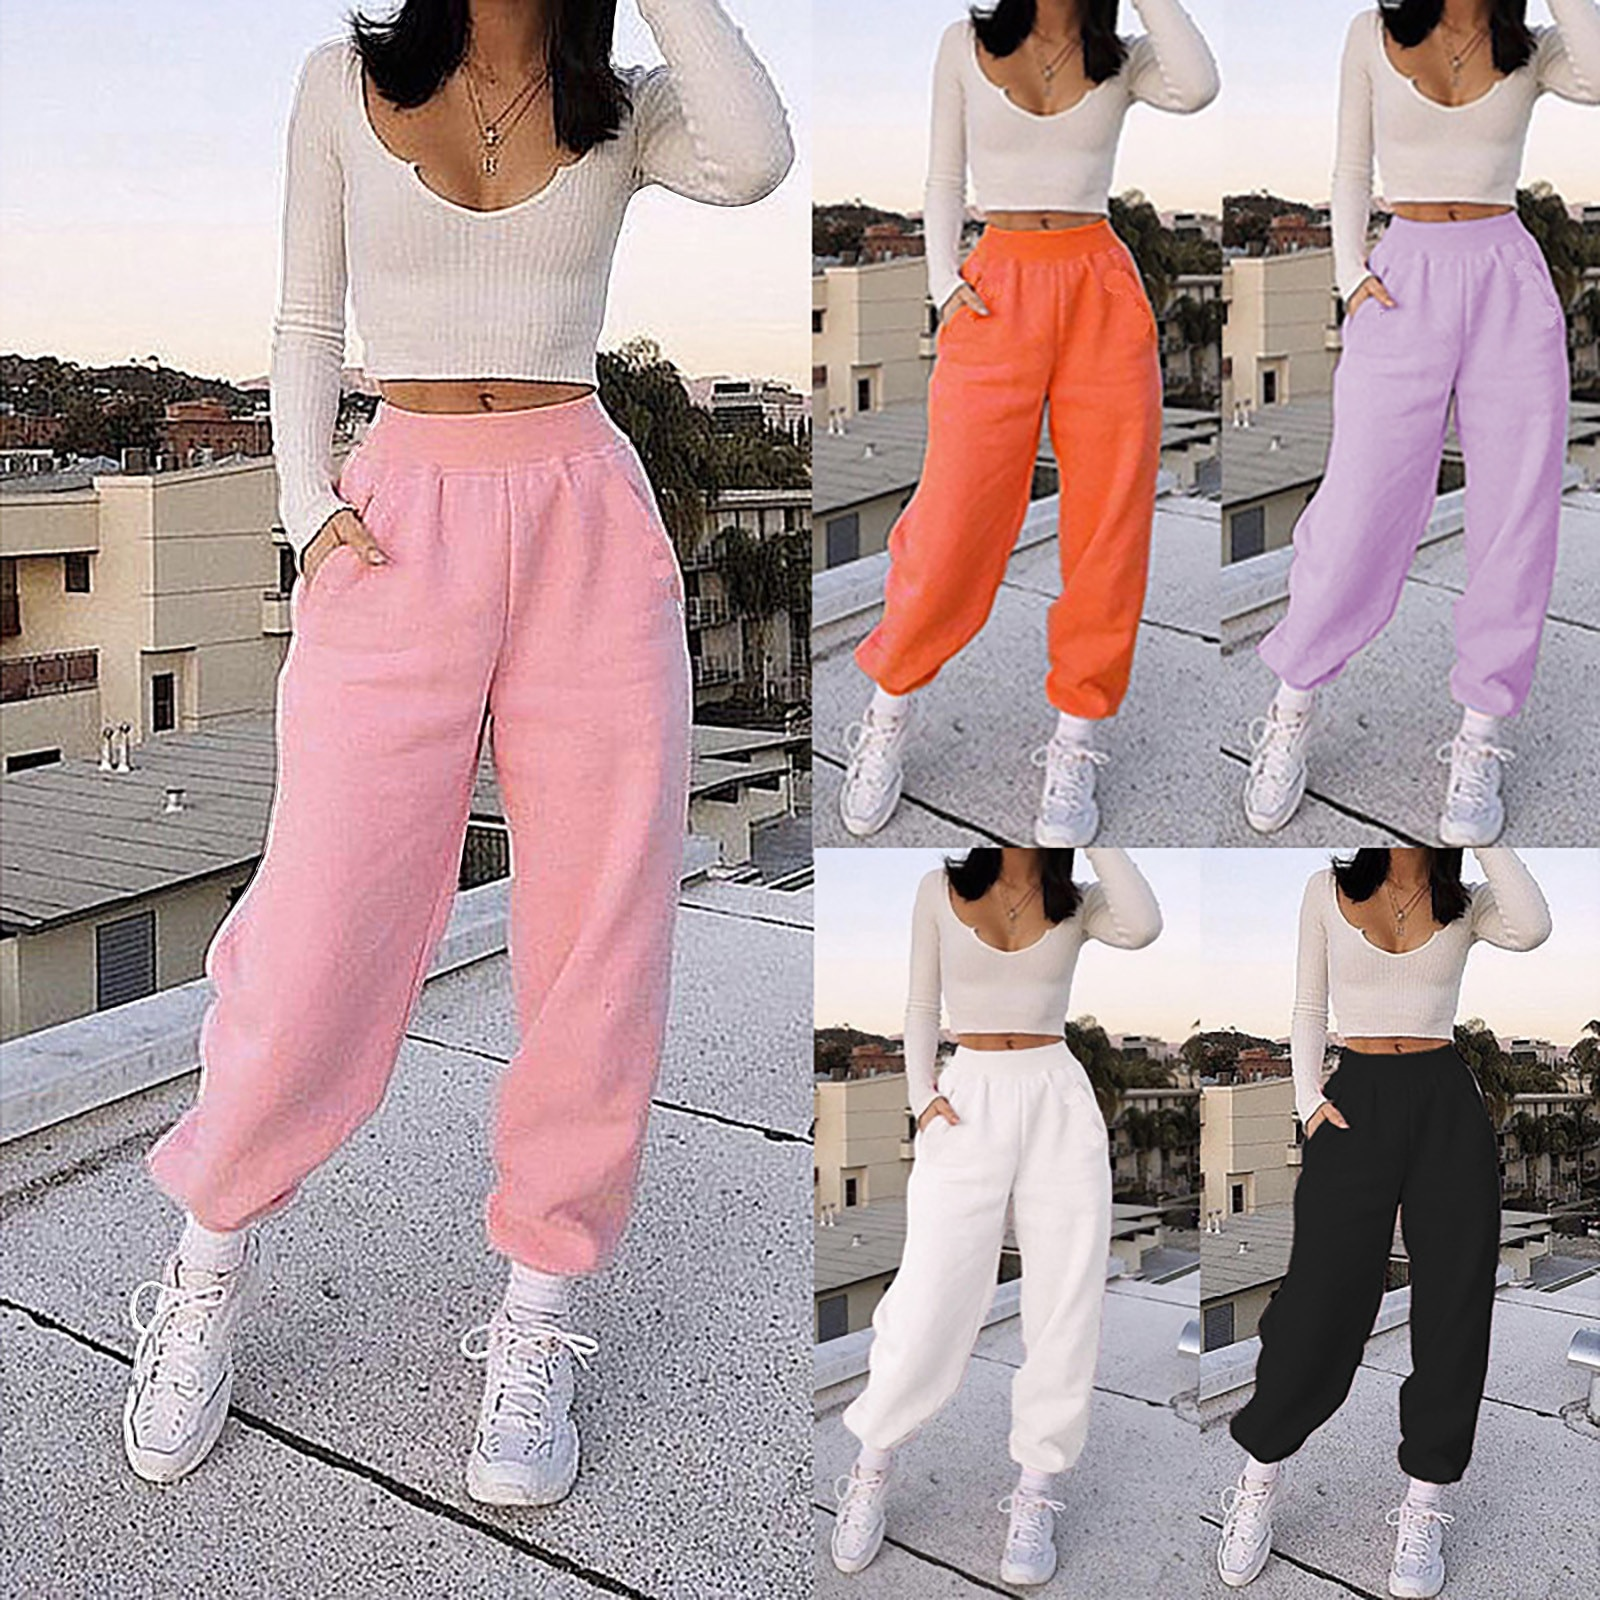 Fashion casual Sweet and lovely solid color sports pants high waist warm and comfortable Women Sweat